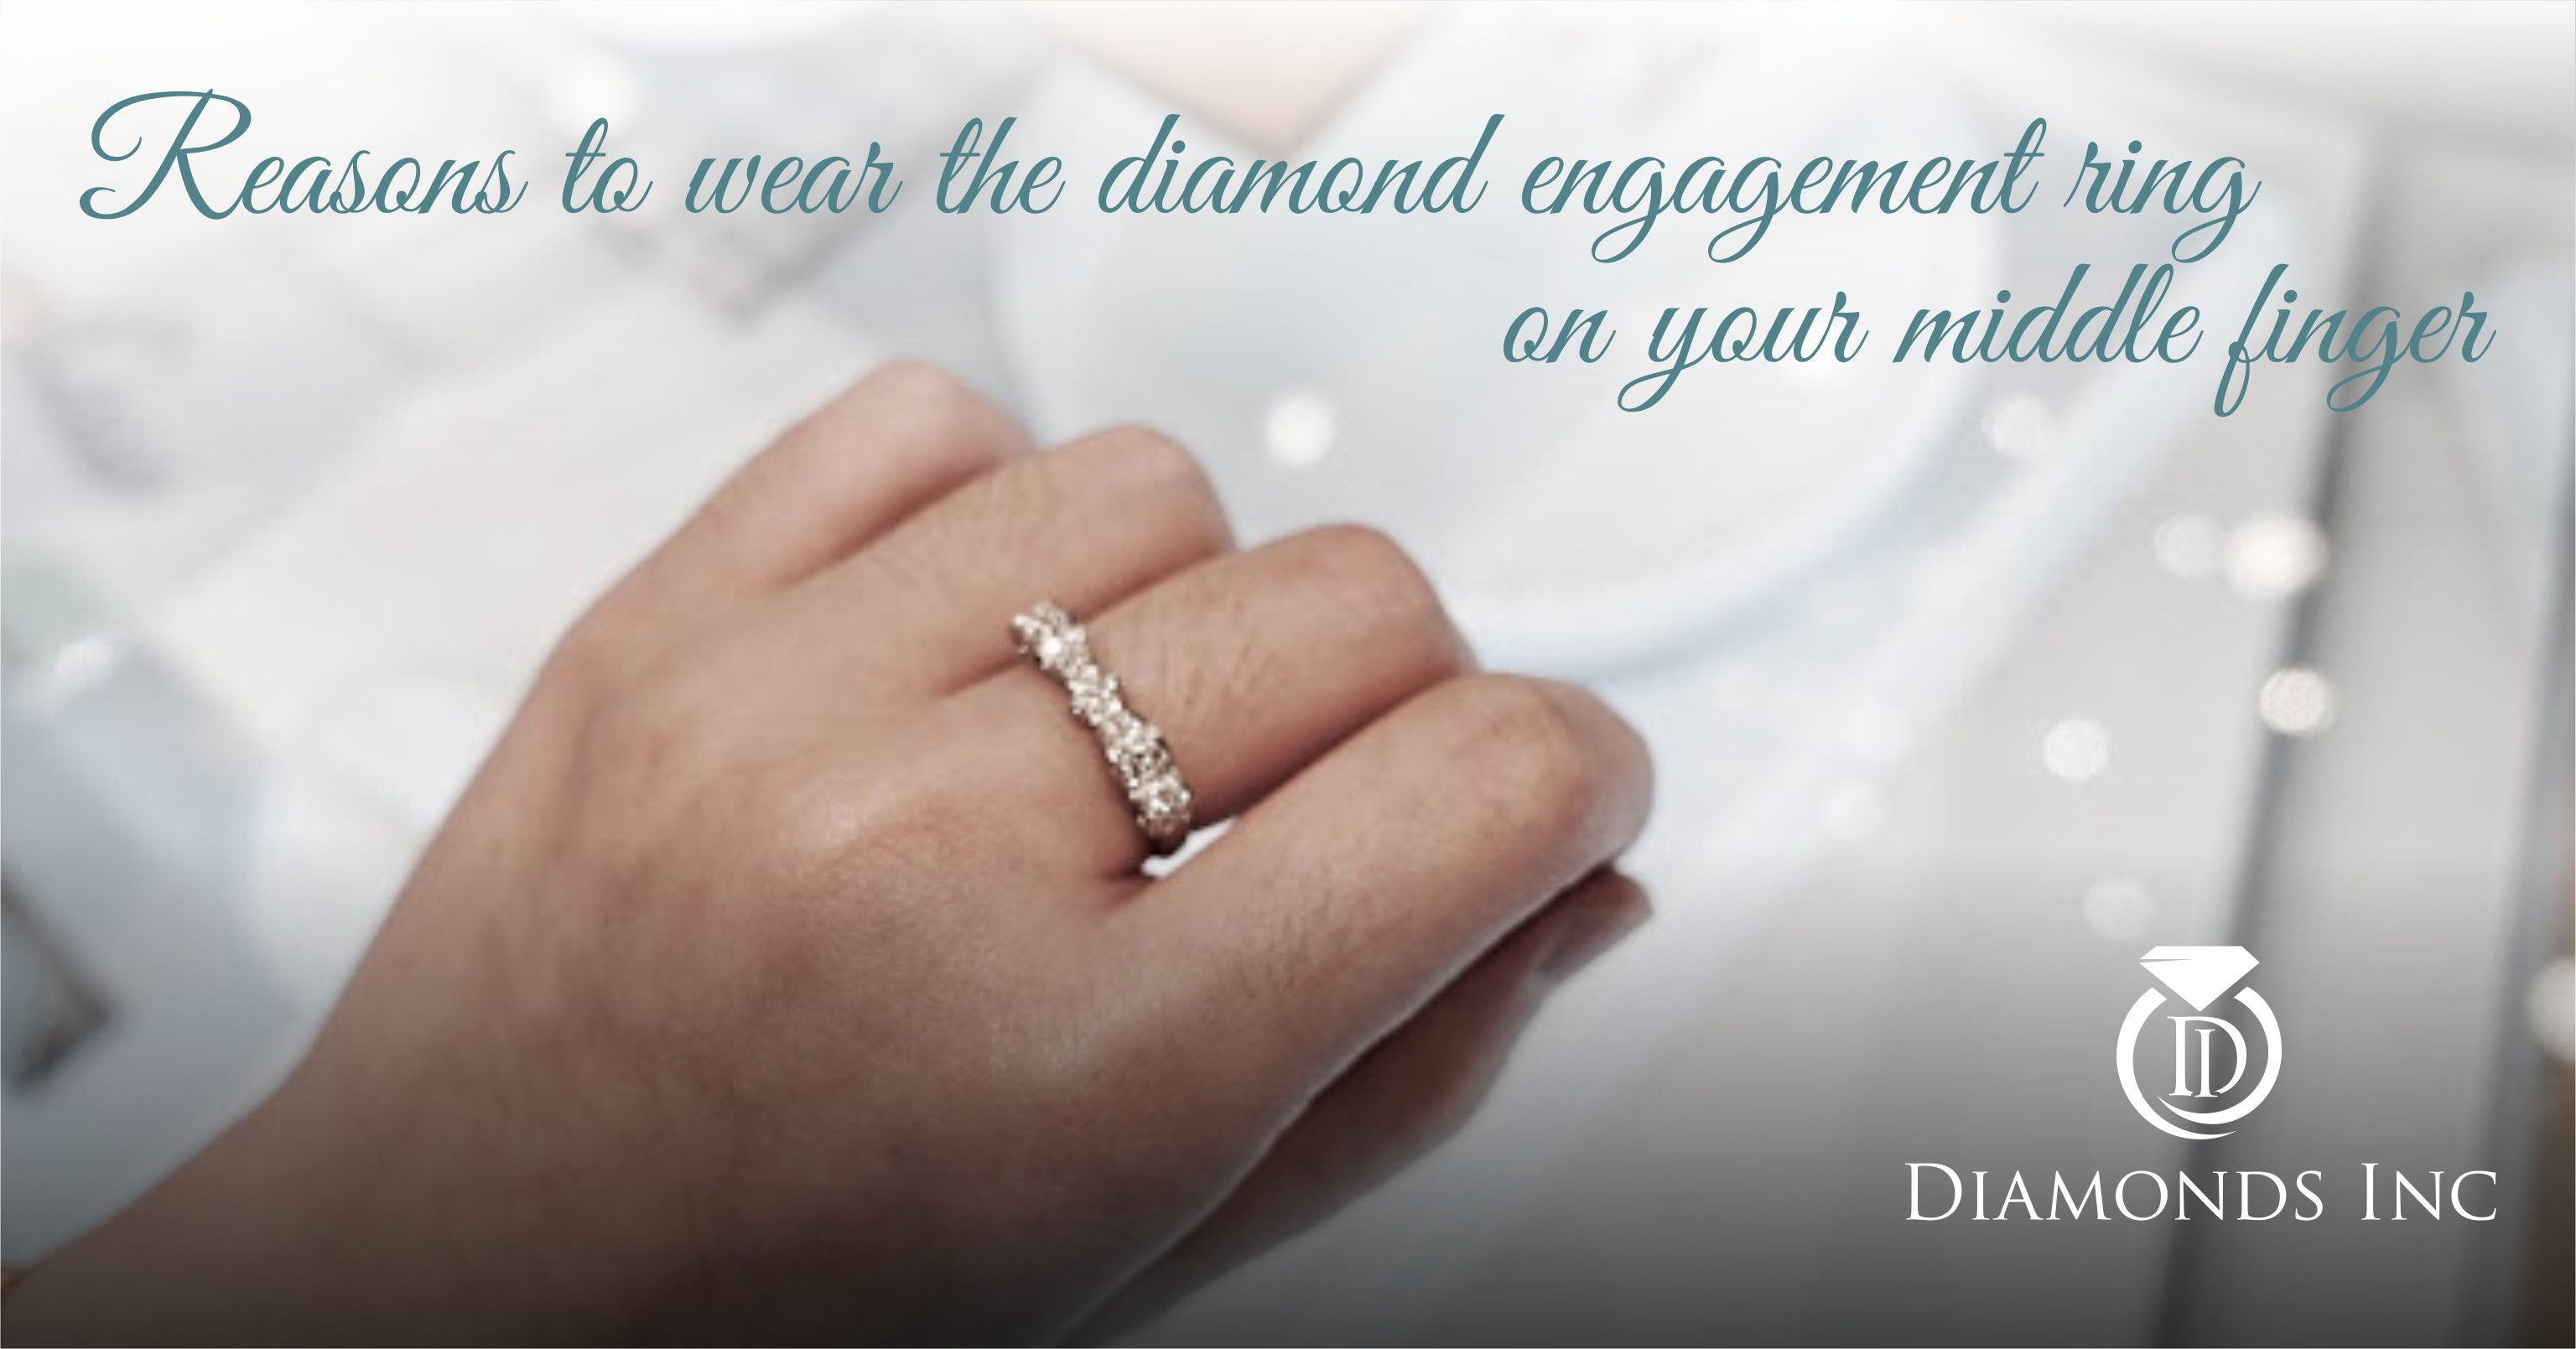 Reasons to Wear Diamond Engagement Ring on Your Middle Finger